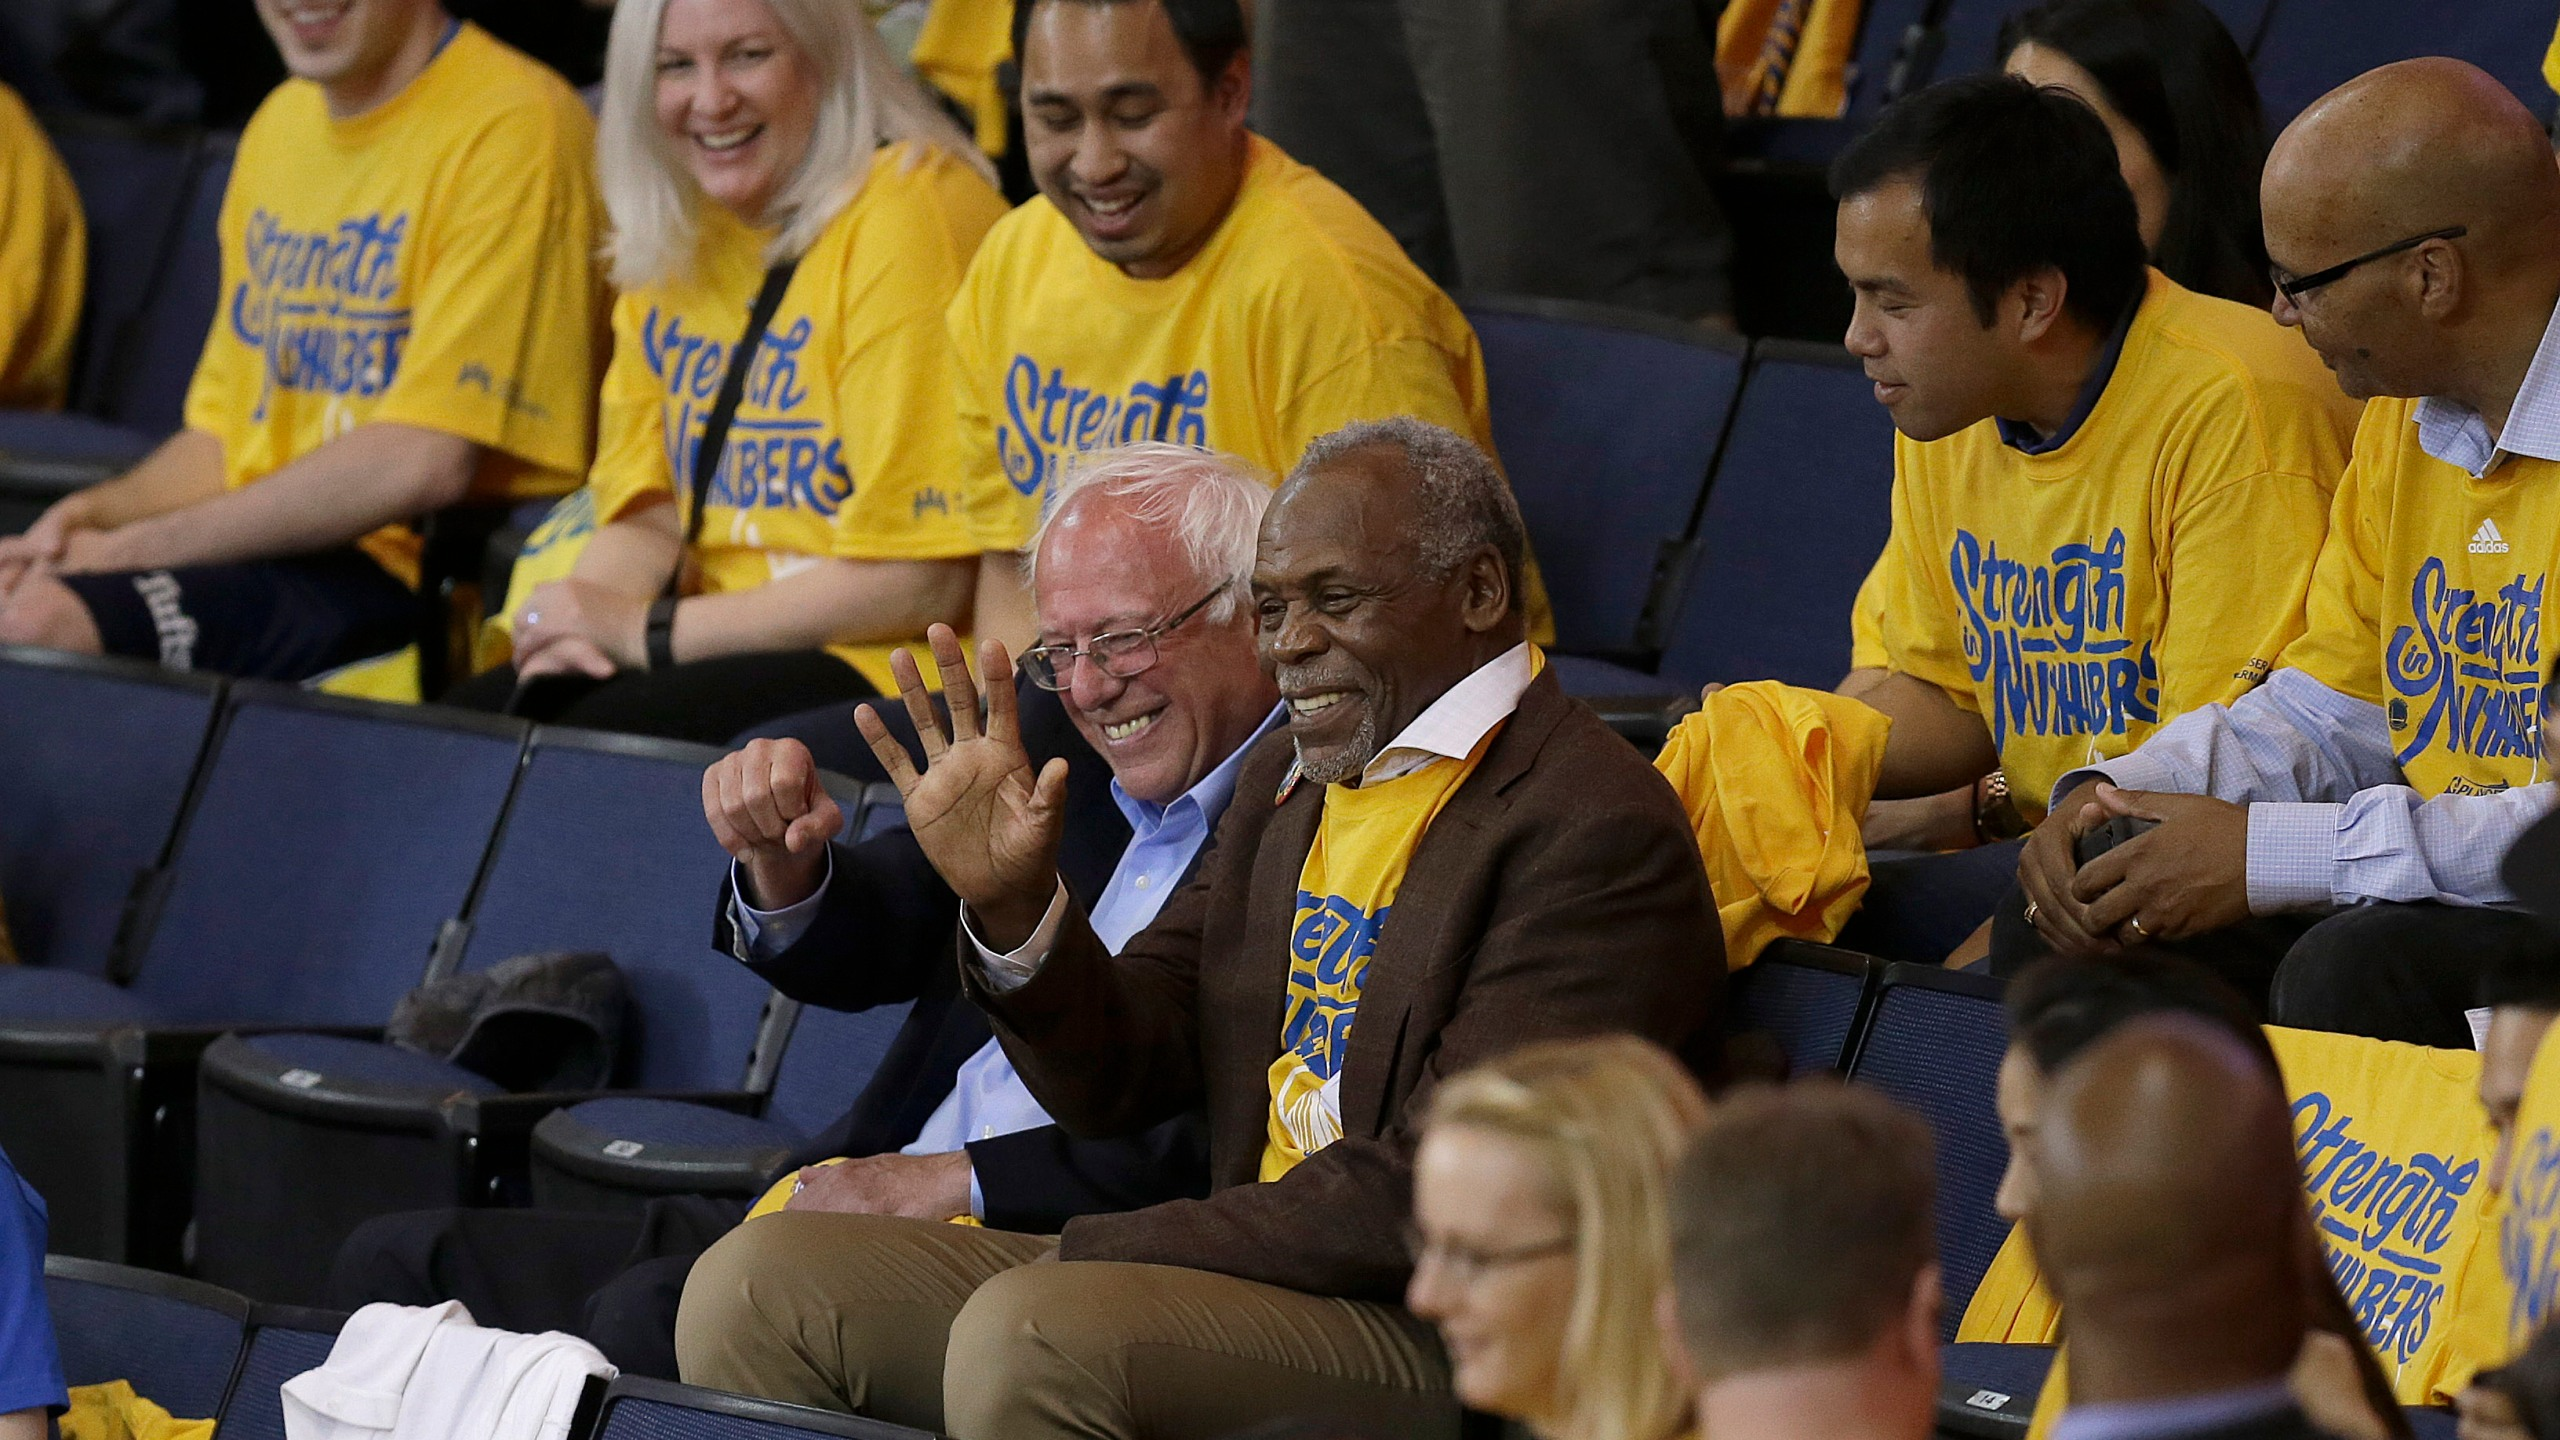 Bernie Sanders, Danny Glover Photo by Ben Margot, AP Photo_280077